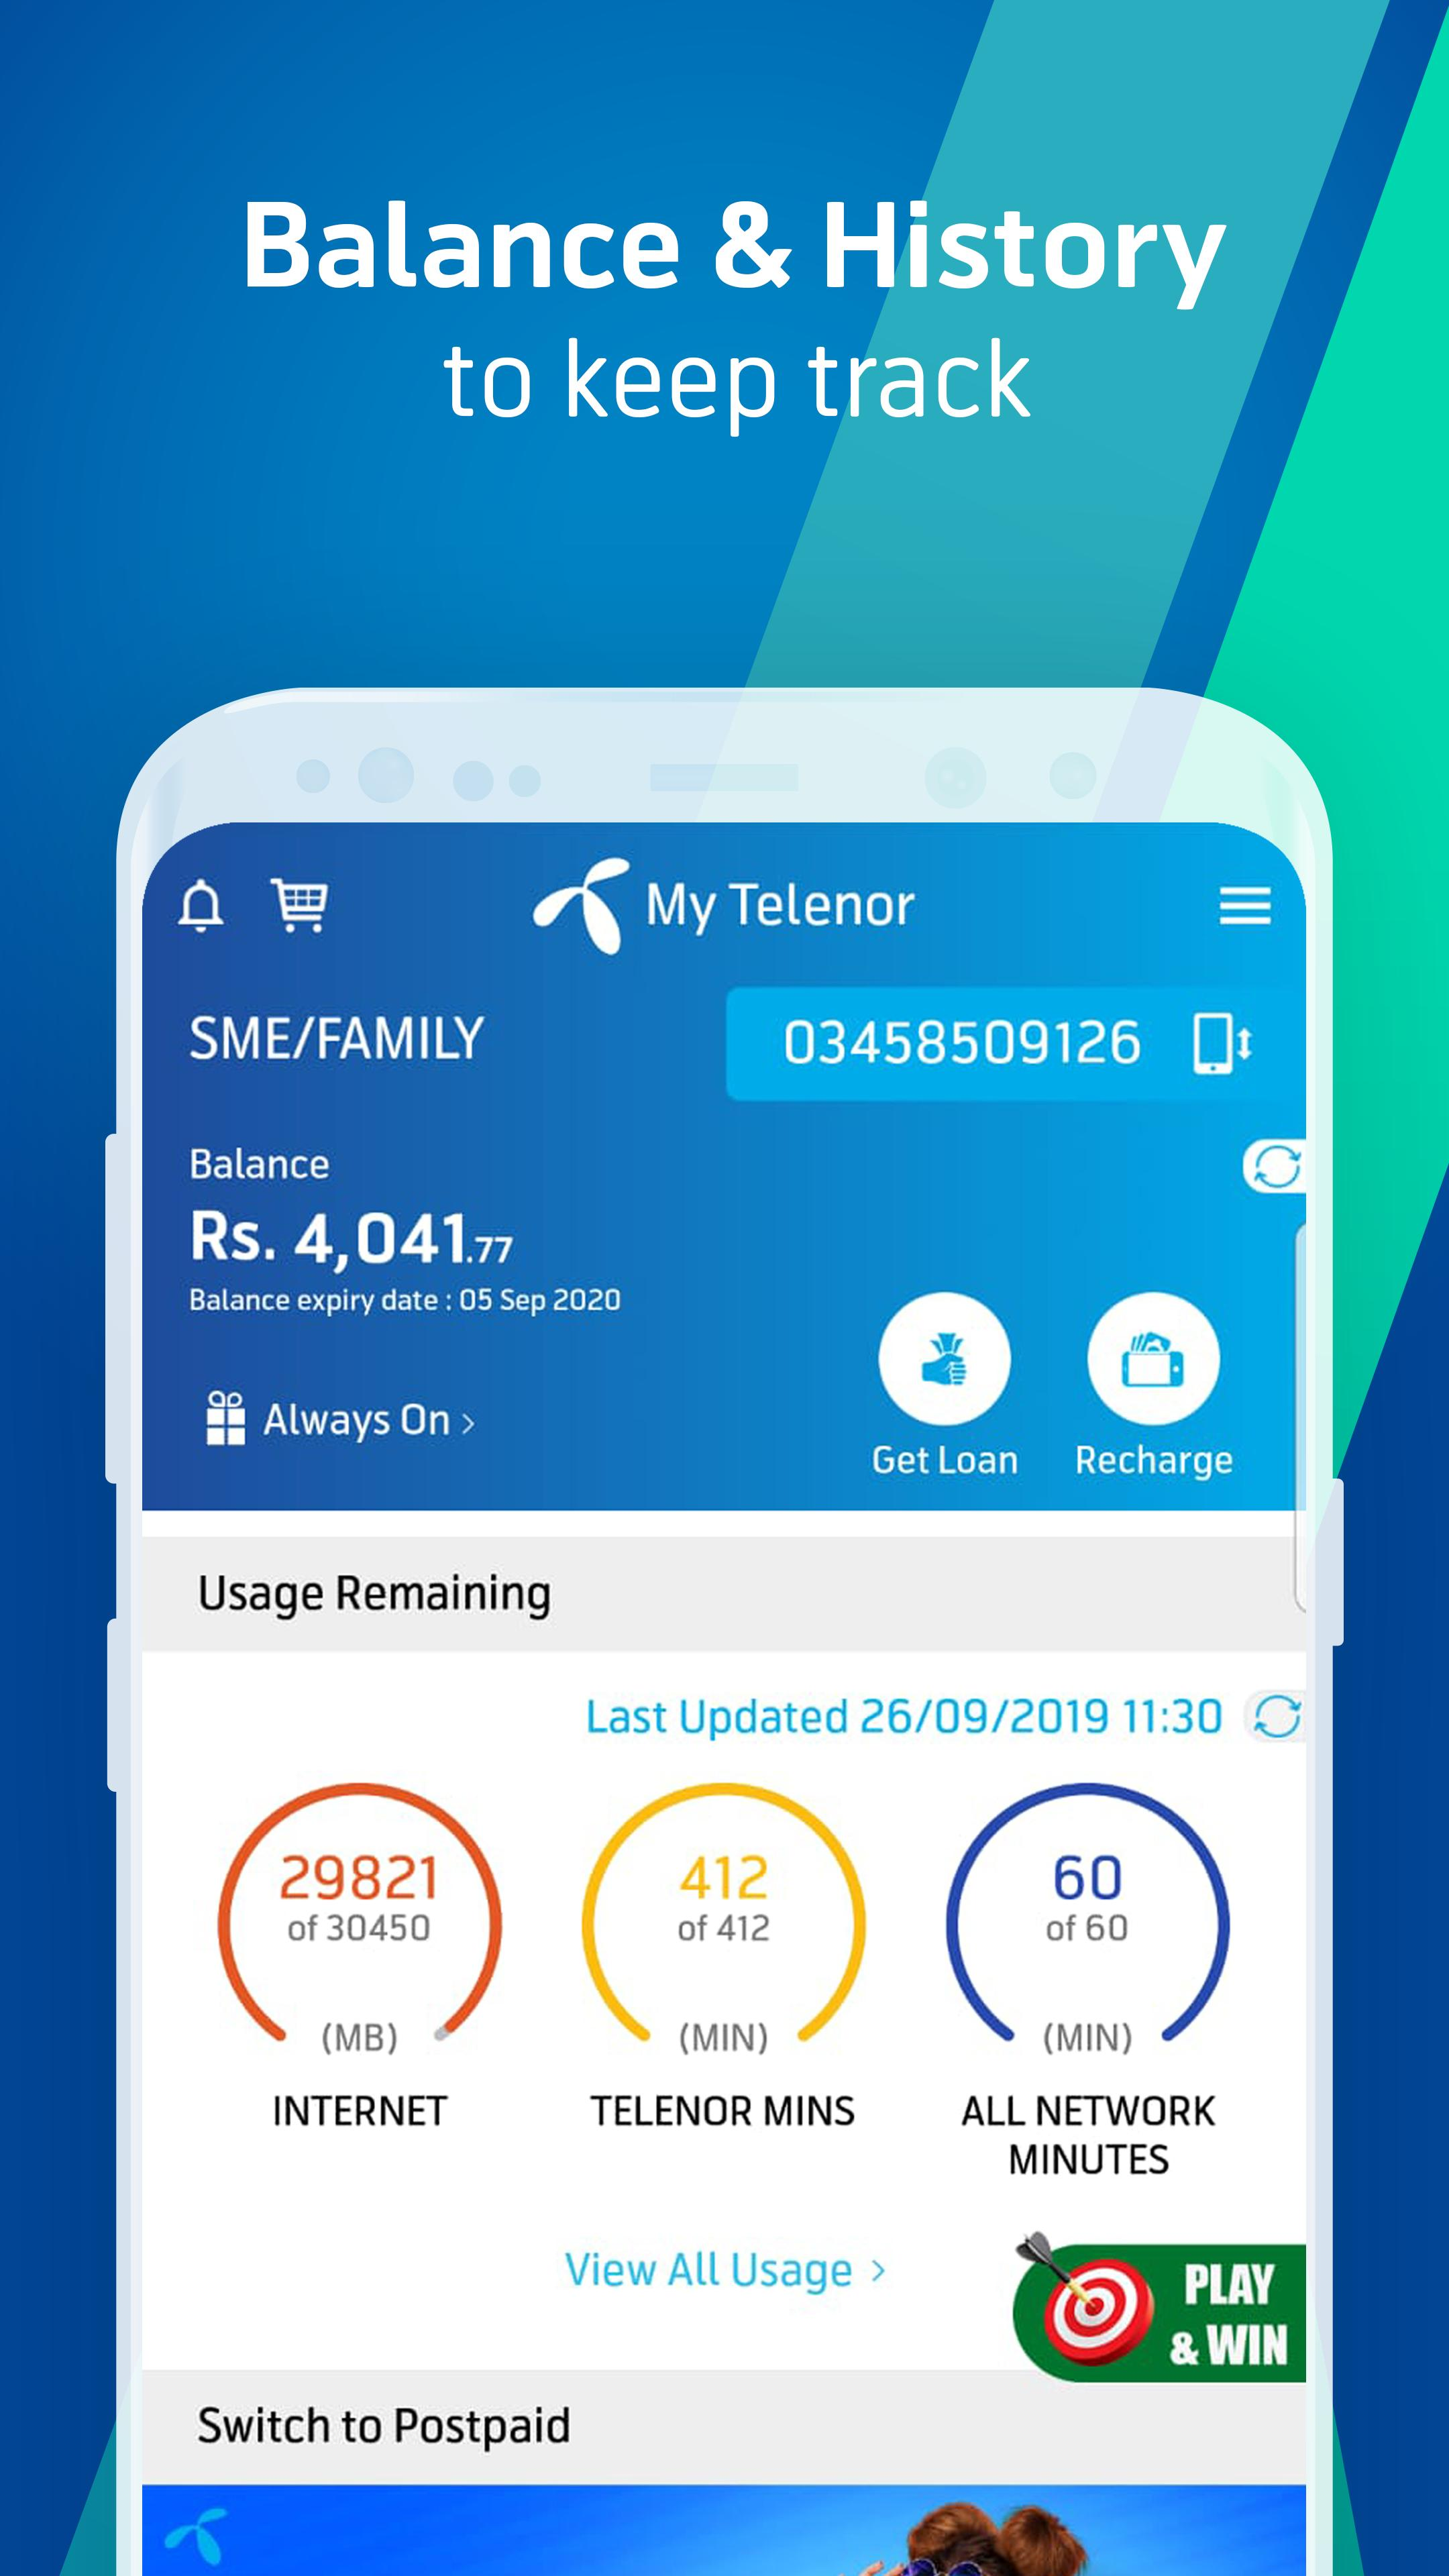 My Telenor For Android Apk Download